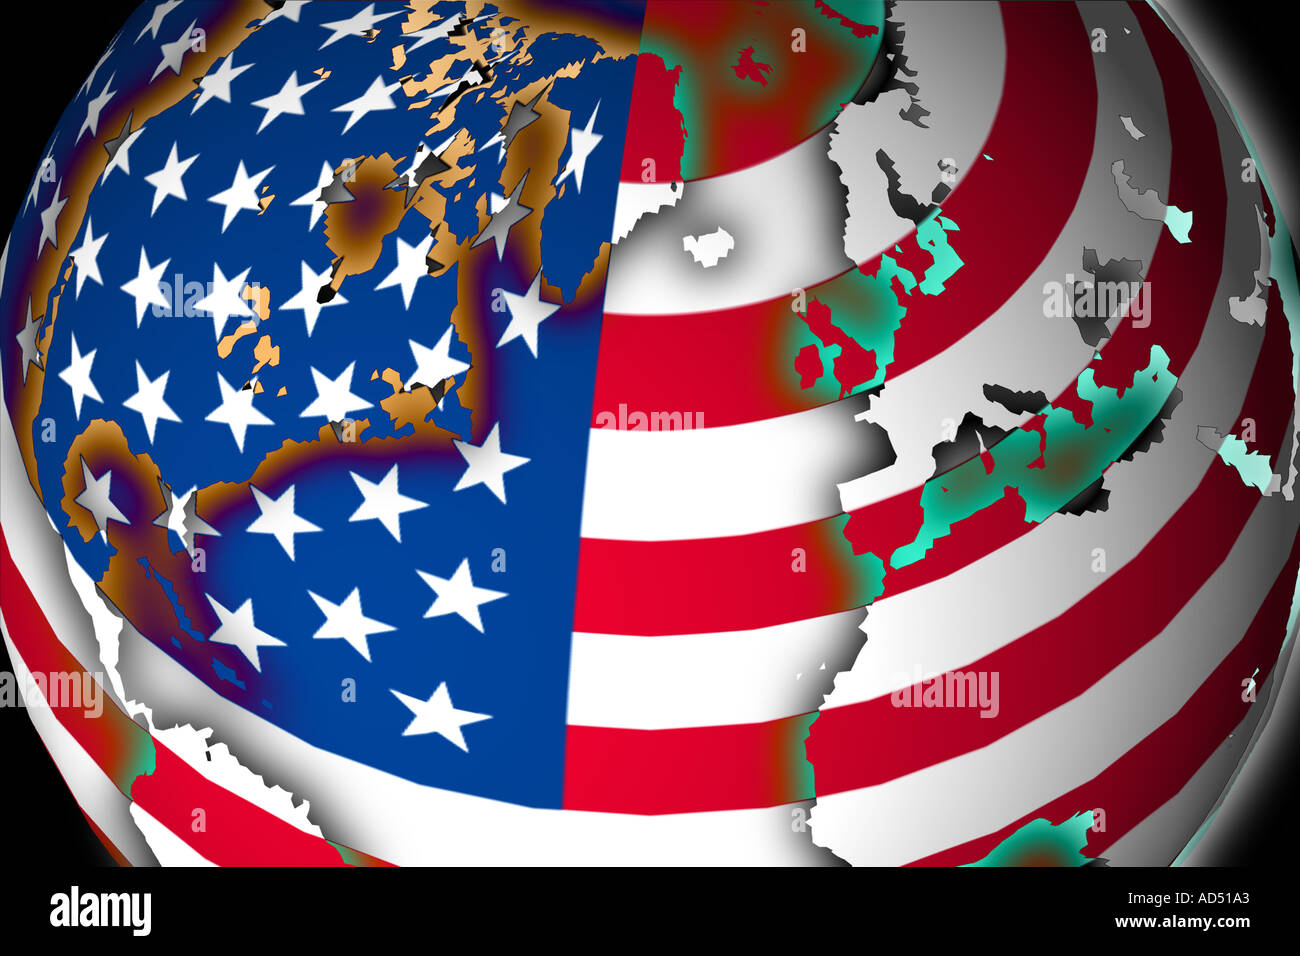 Round us flag ball with world map superimposed stock photo 872867 round us flag ball with world map superimposed gumiabroncs Images